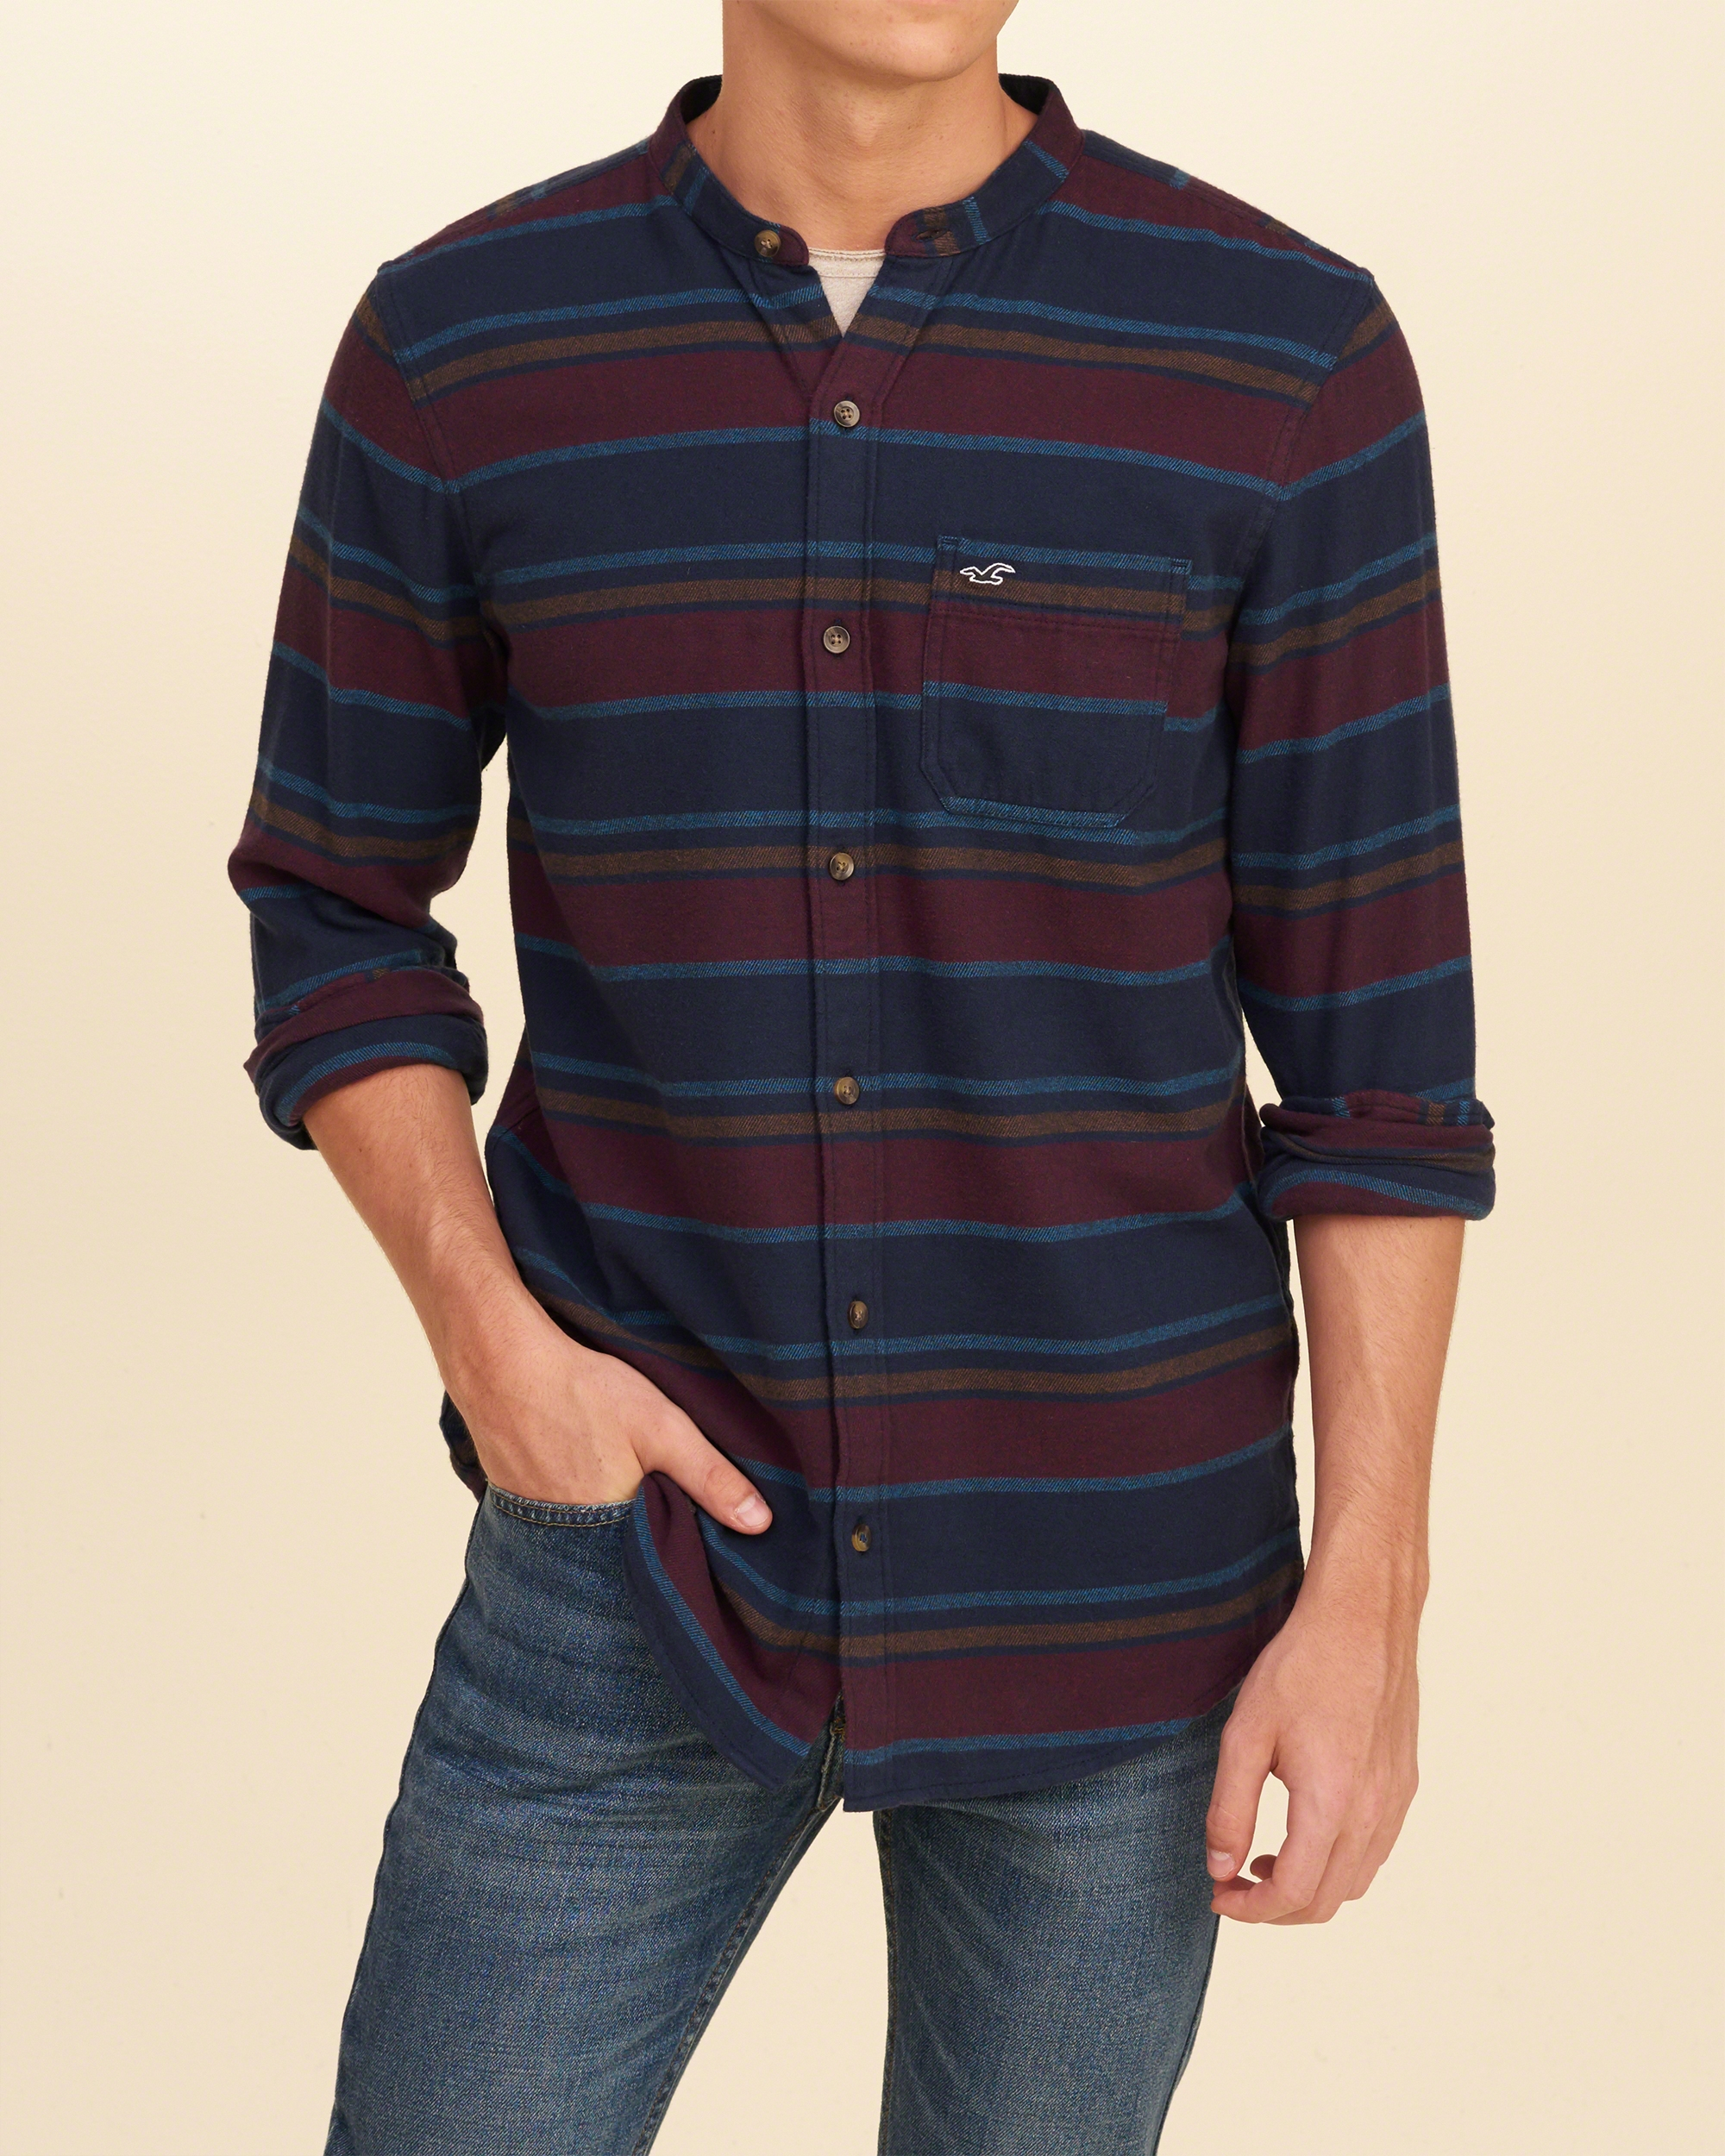 Lyst Hollister Banded Collar Flannel Shirt In Blue For Men